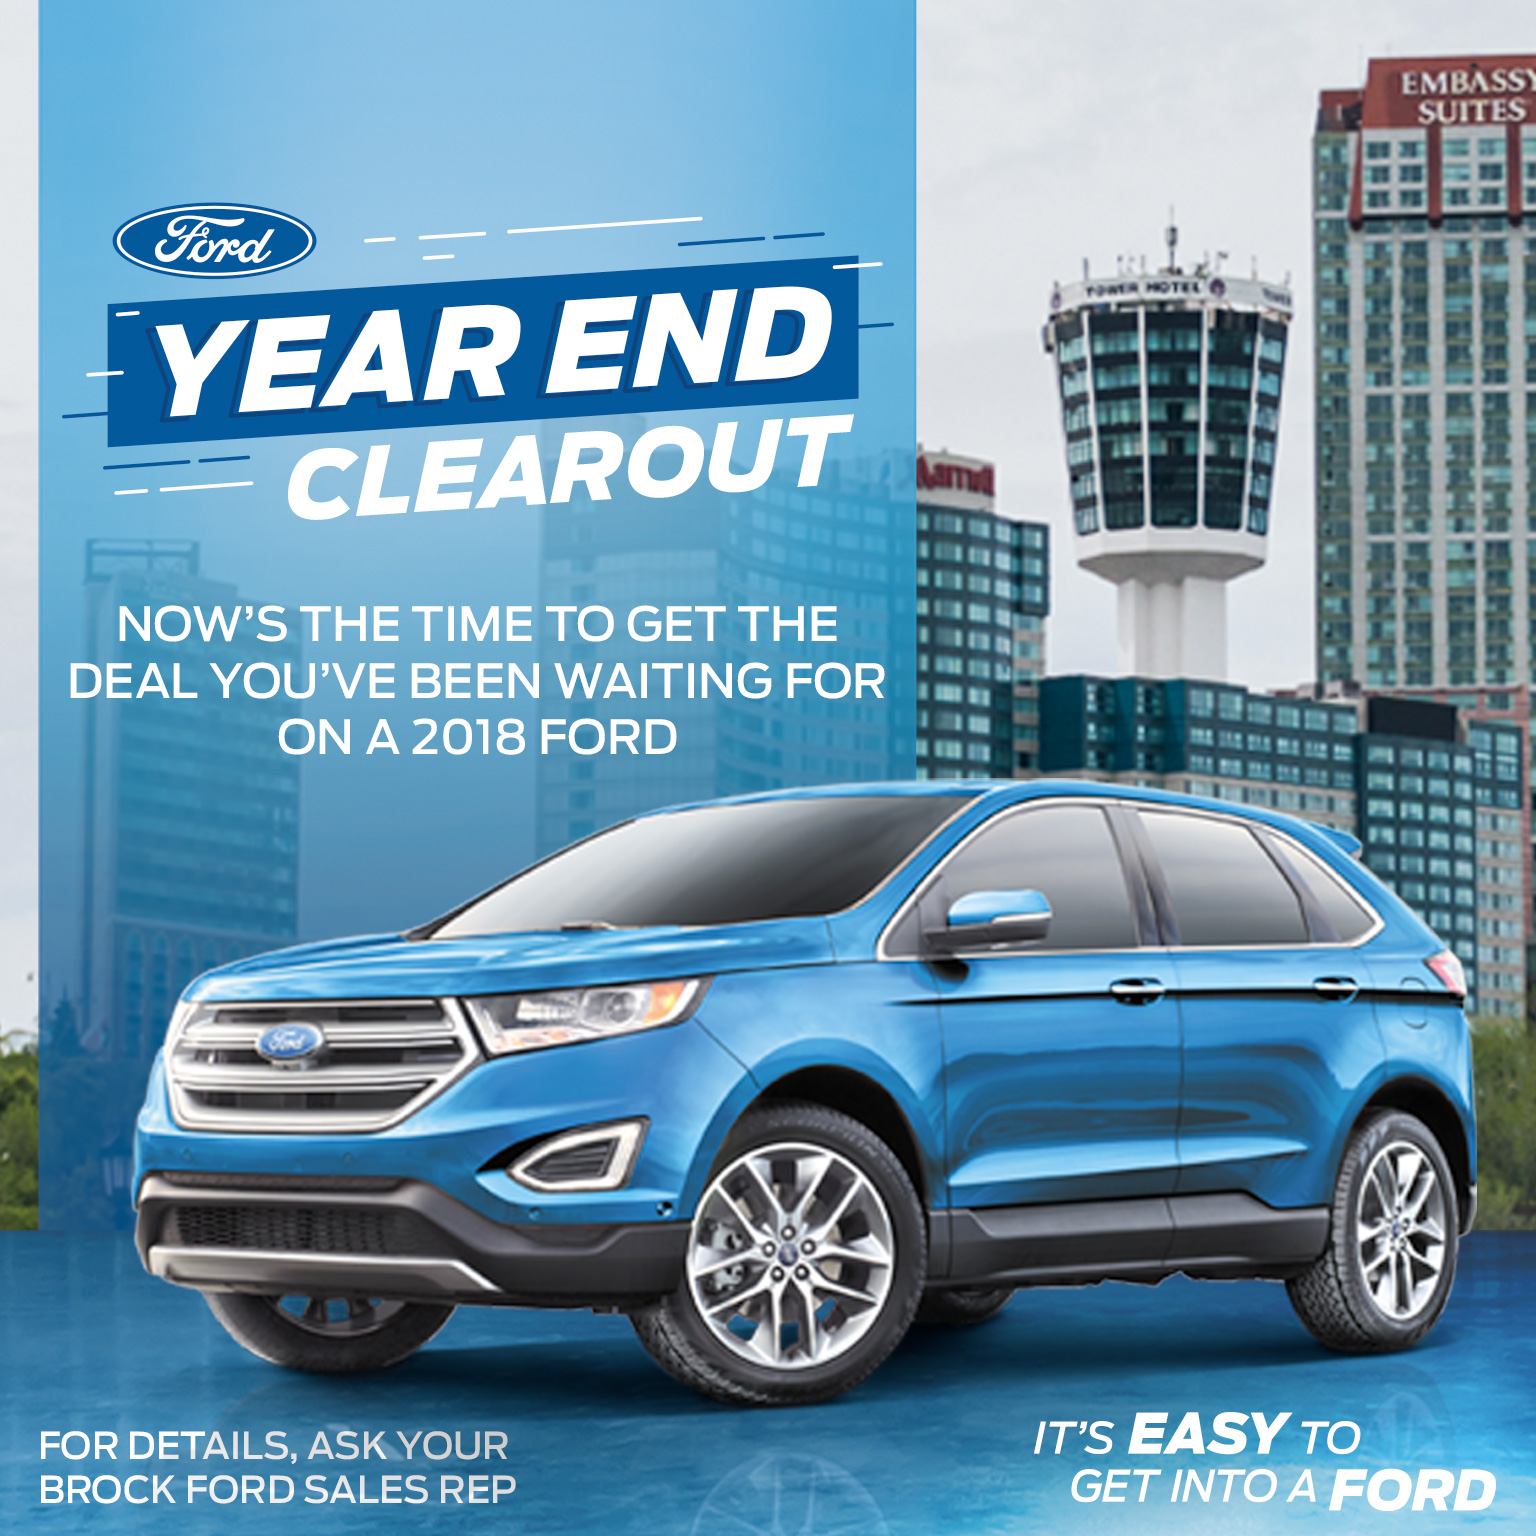 Brock Ford Sales Your Local Niagara Falls Ford Dealer